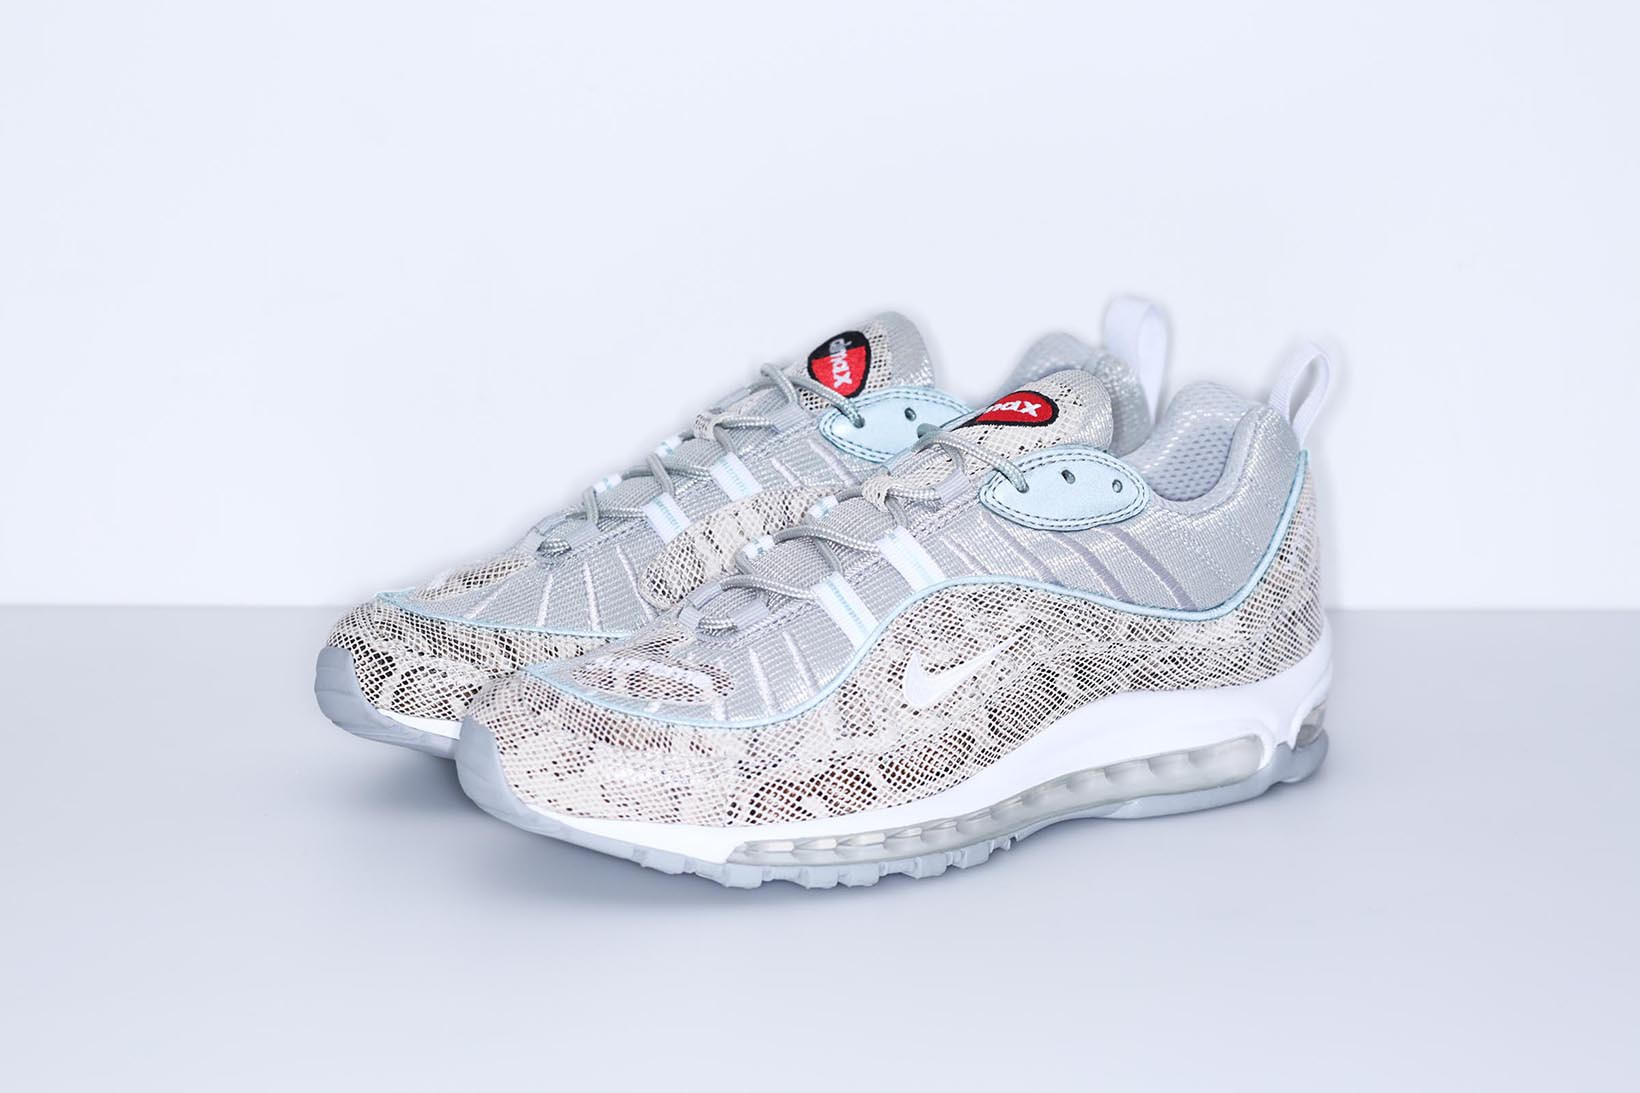 2655e0fe87 NikeLab X Supreme Air Max 98 - Data De Lançamento - SneakersBR